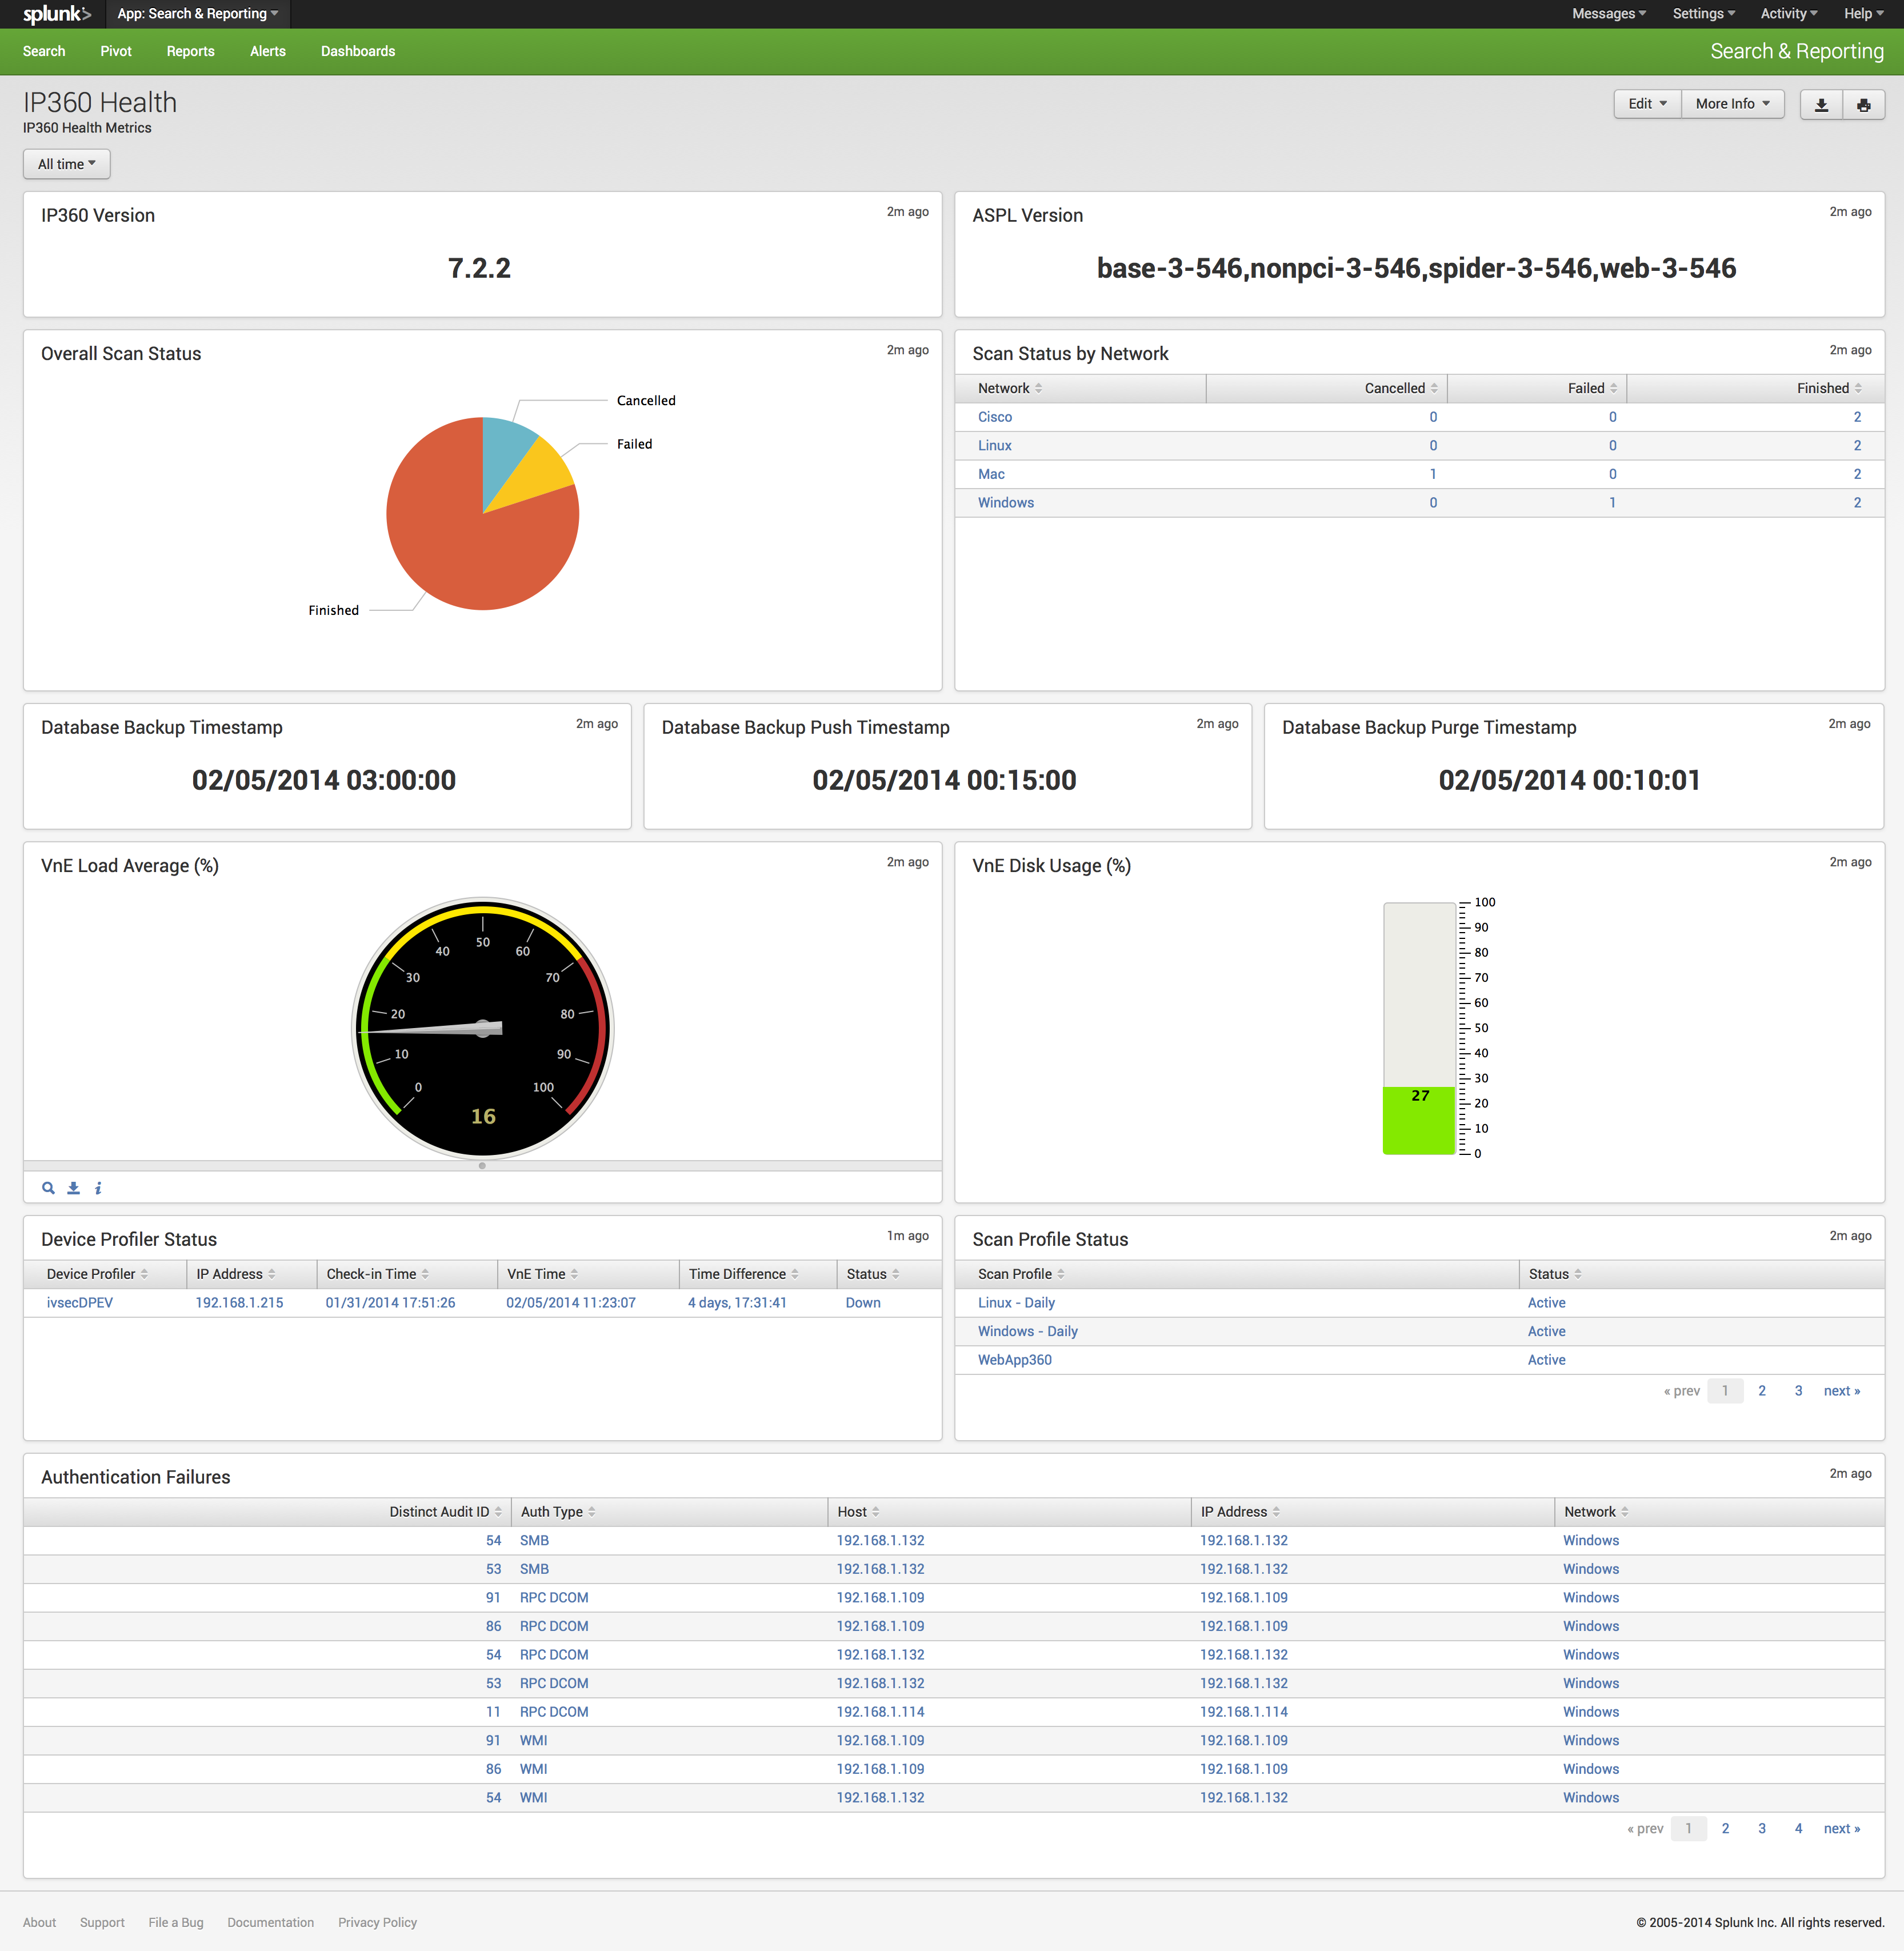 Splunk - IP360 Health Dashboard